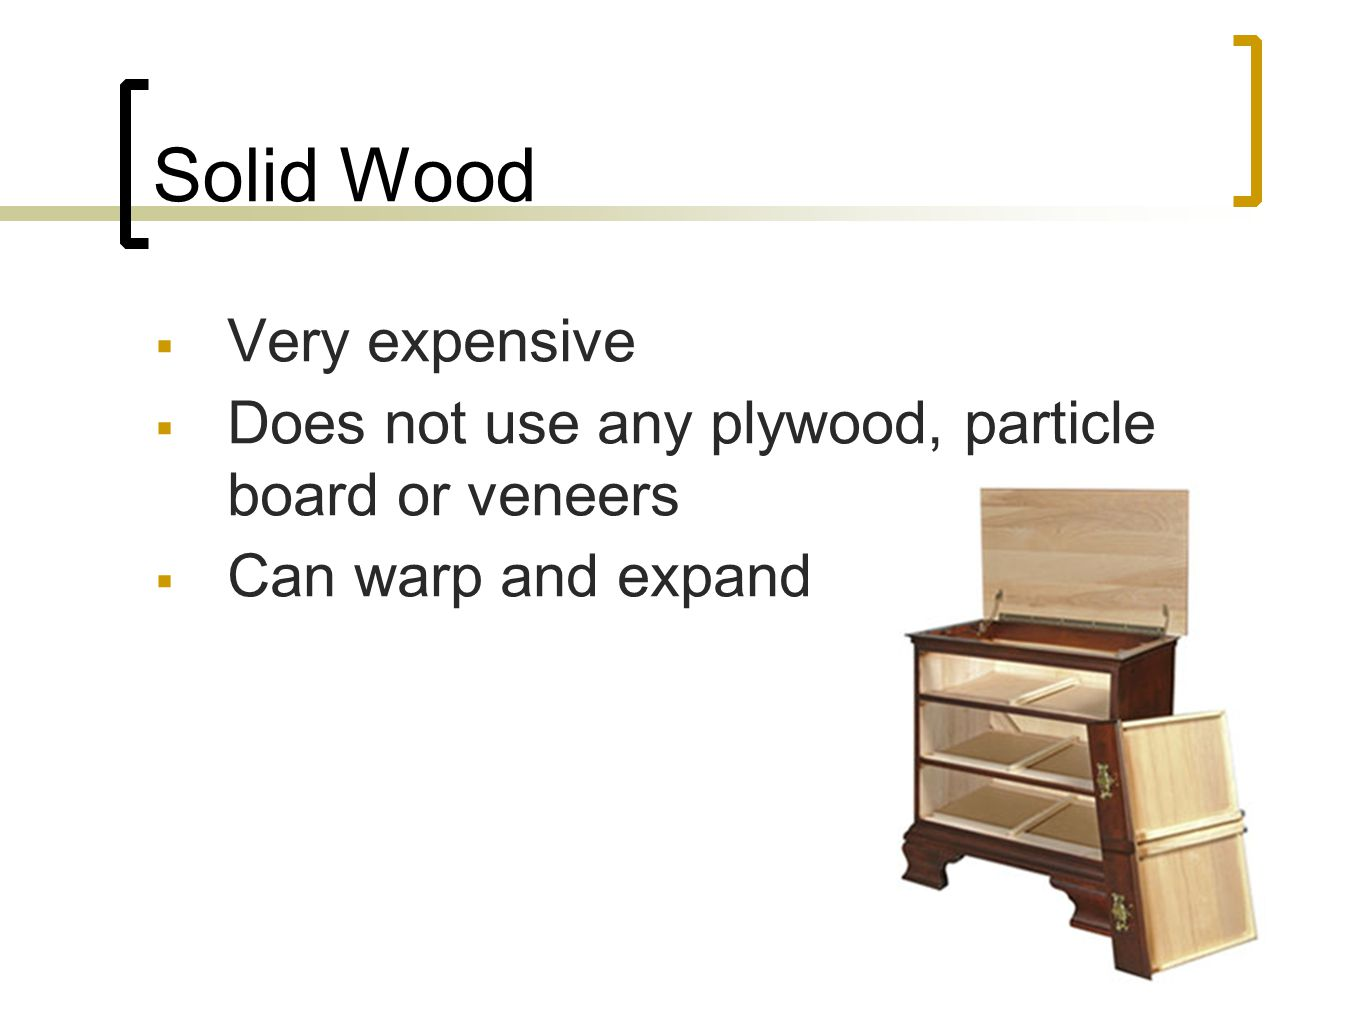 Solid Wood Very expensive Does not use any plywood, particle board or veneers Can warp and expand